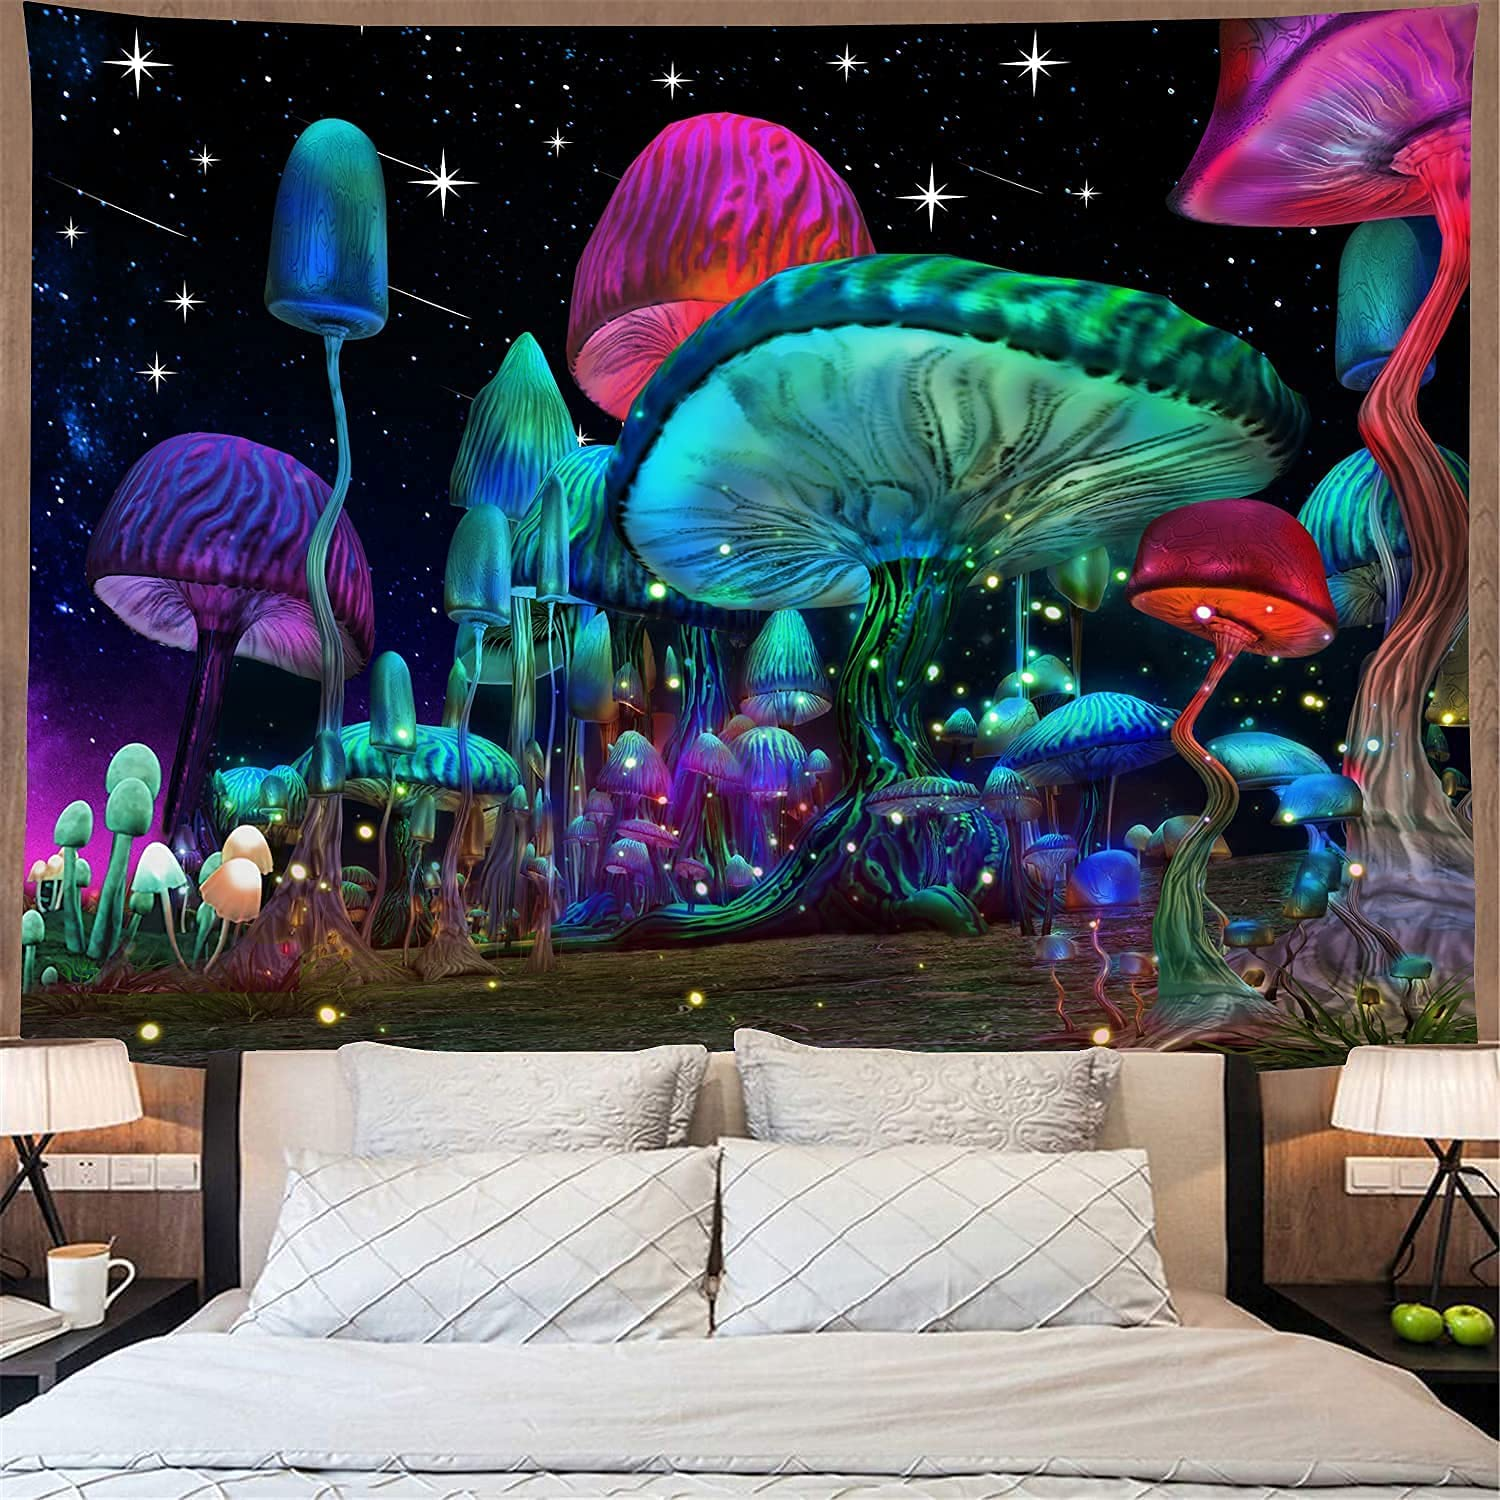 Bacazue Psychedelic Mushroom Tapestry Fantasy Waves Starry sky Tapestry Trippy Wall Hanging Tapestry for Bedroom Living Room Home Decor (29.5